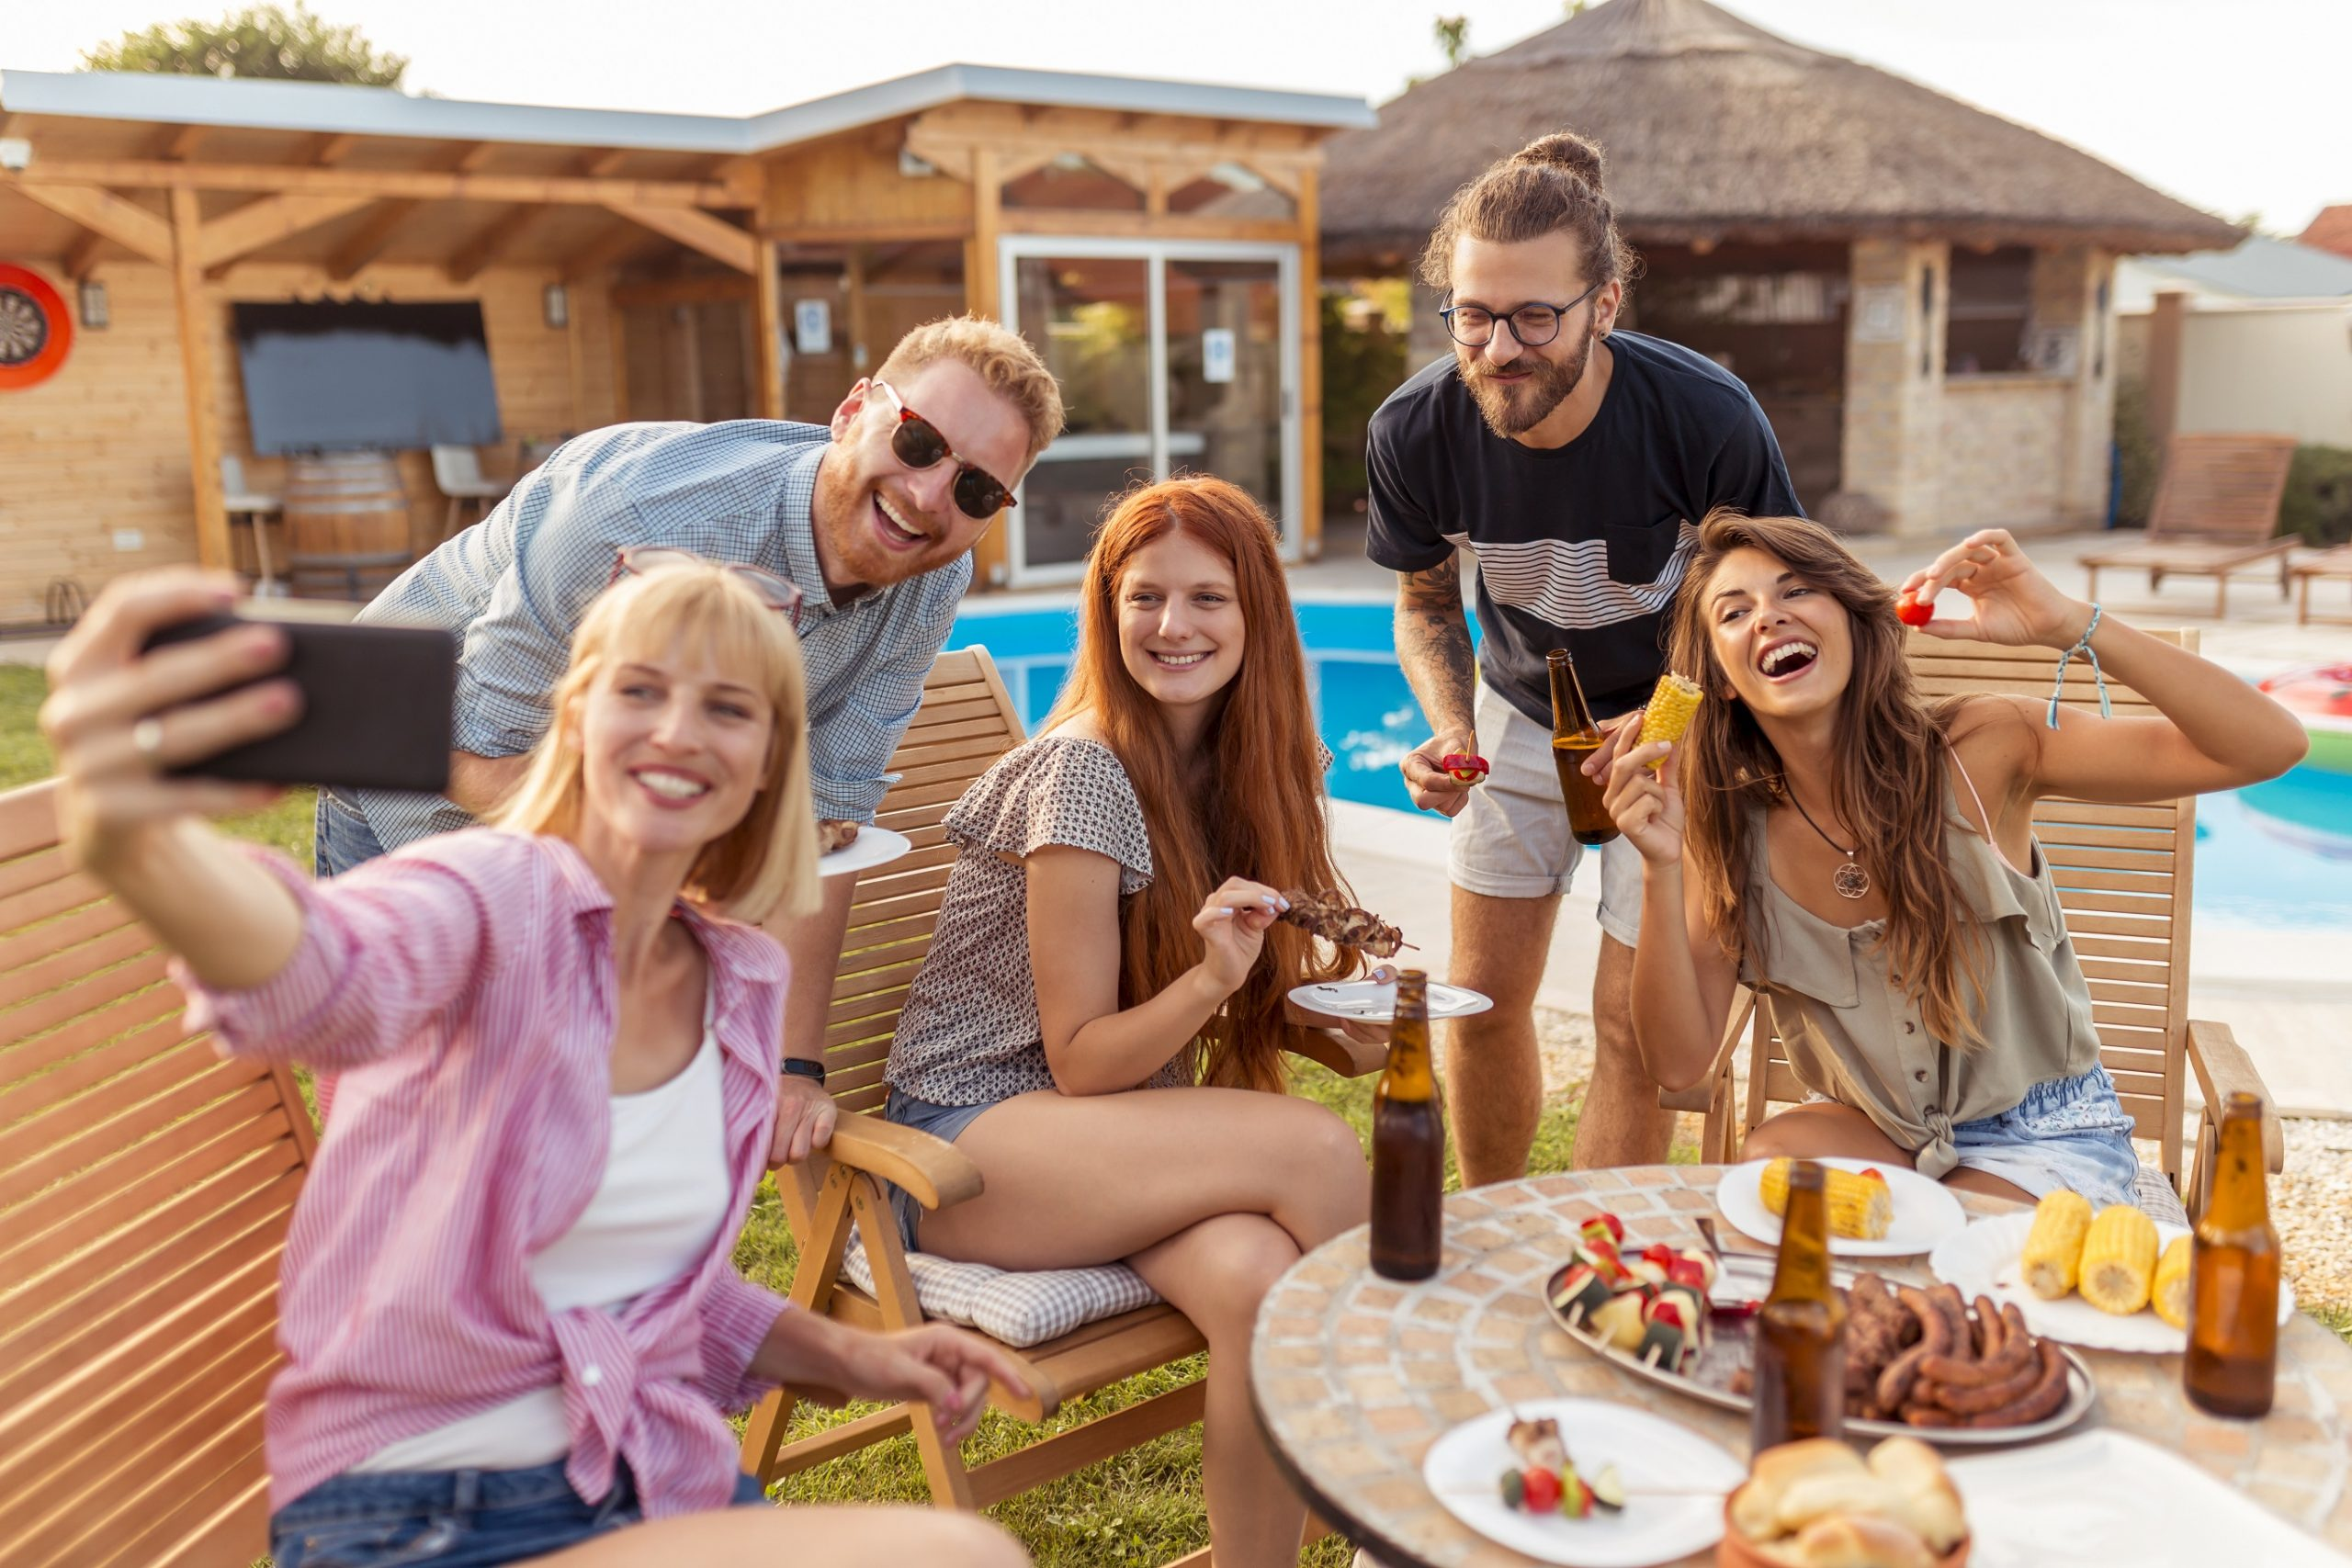 Friends taking a selfie at backyard barbecue party